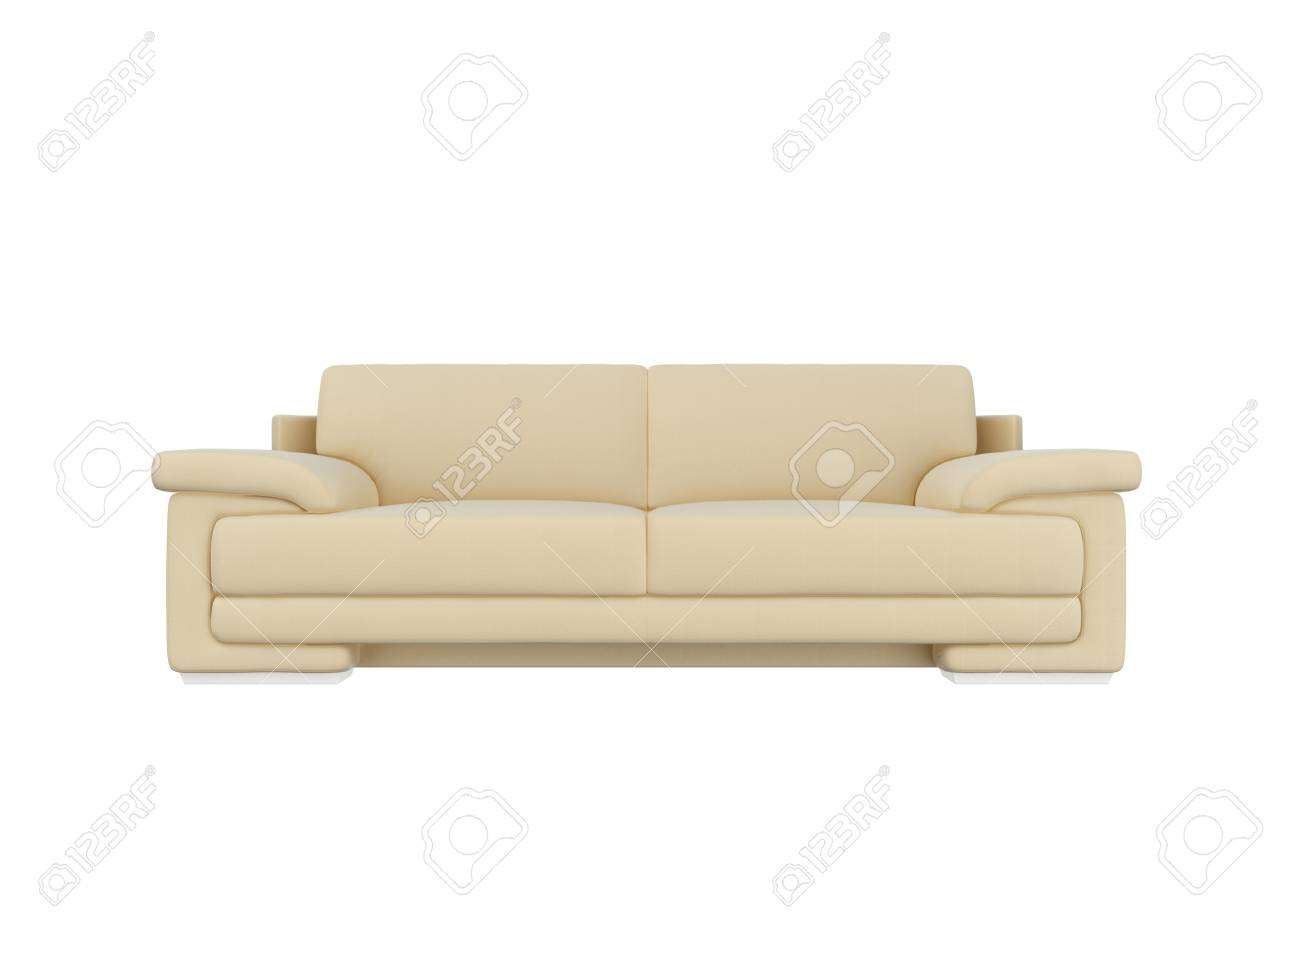 3d rendering ivory leather sofa front view stock photo 83596337